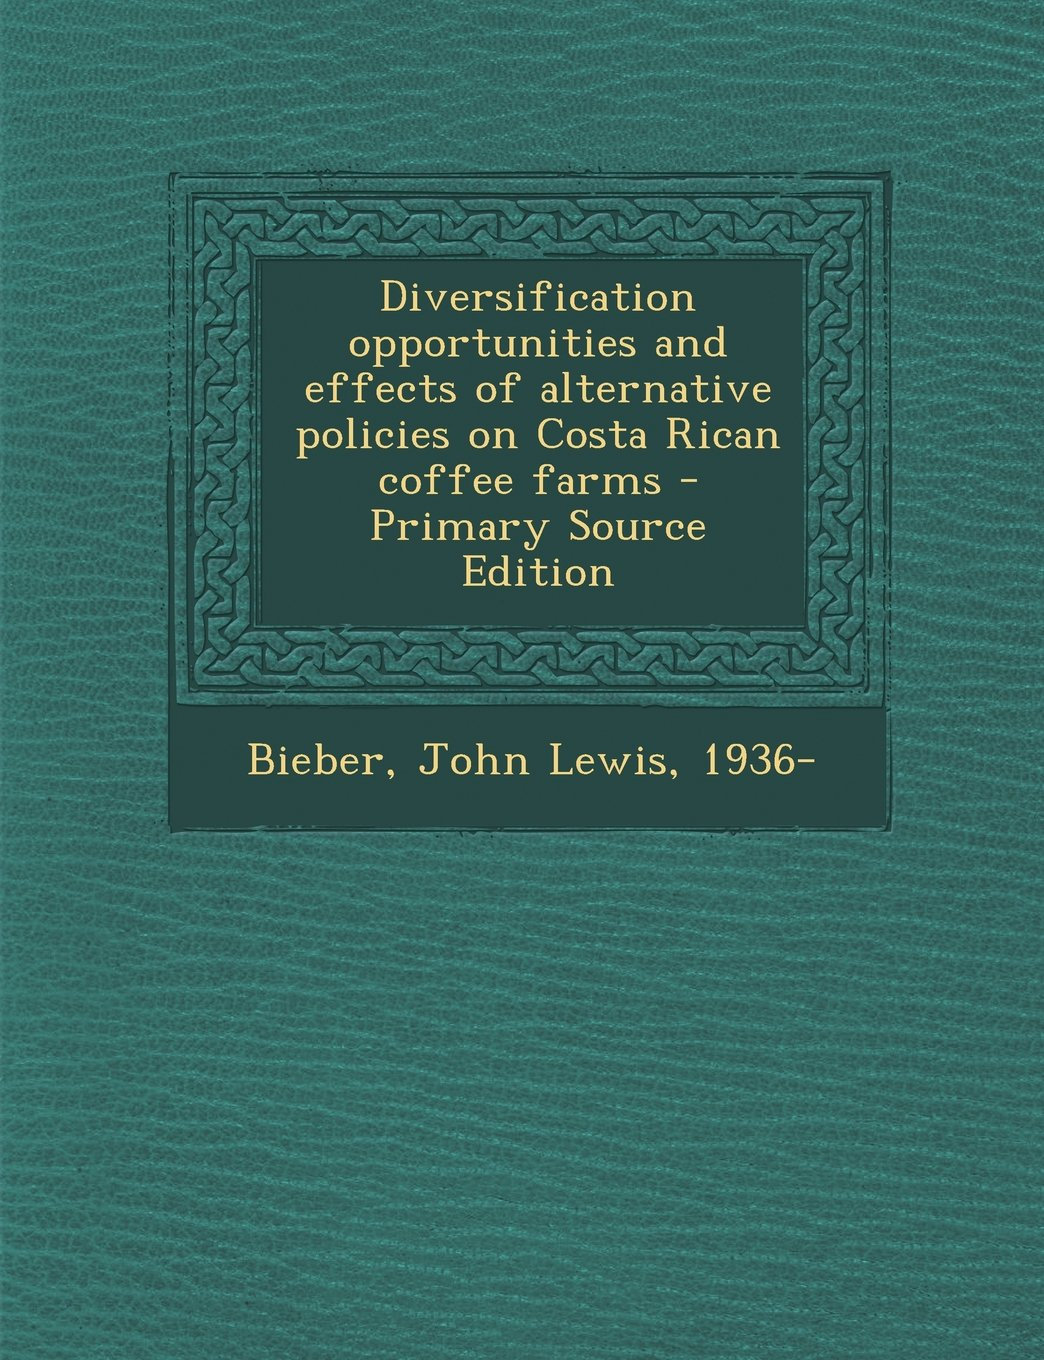 Diversification Opportunities and Effects of Alternative Policies on Costa Rican Coffee Farms - Primary Source Edition